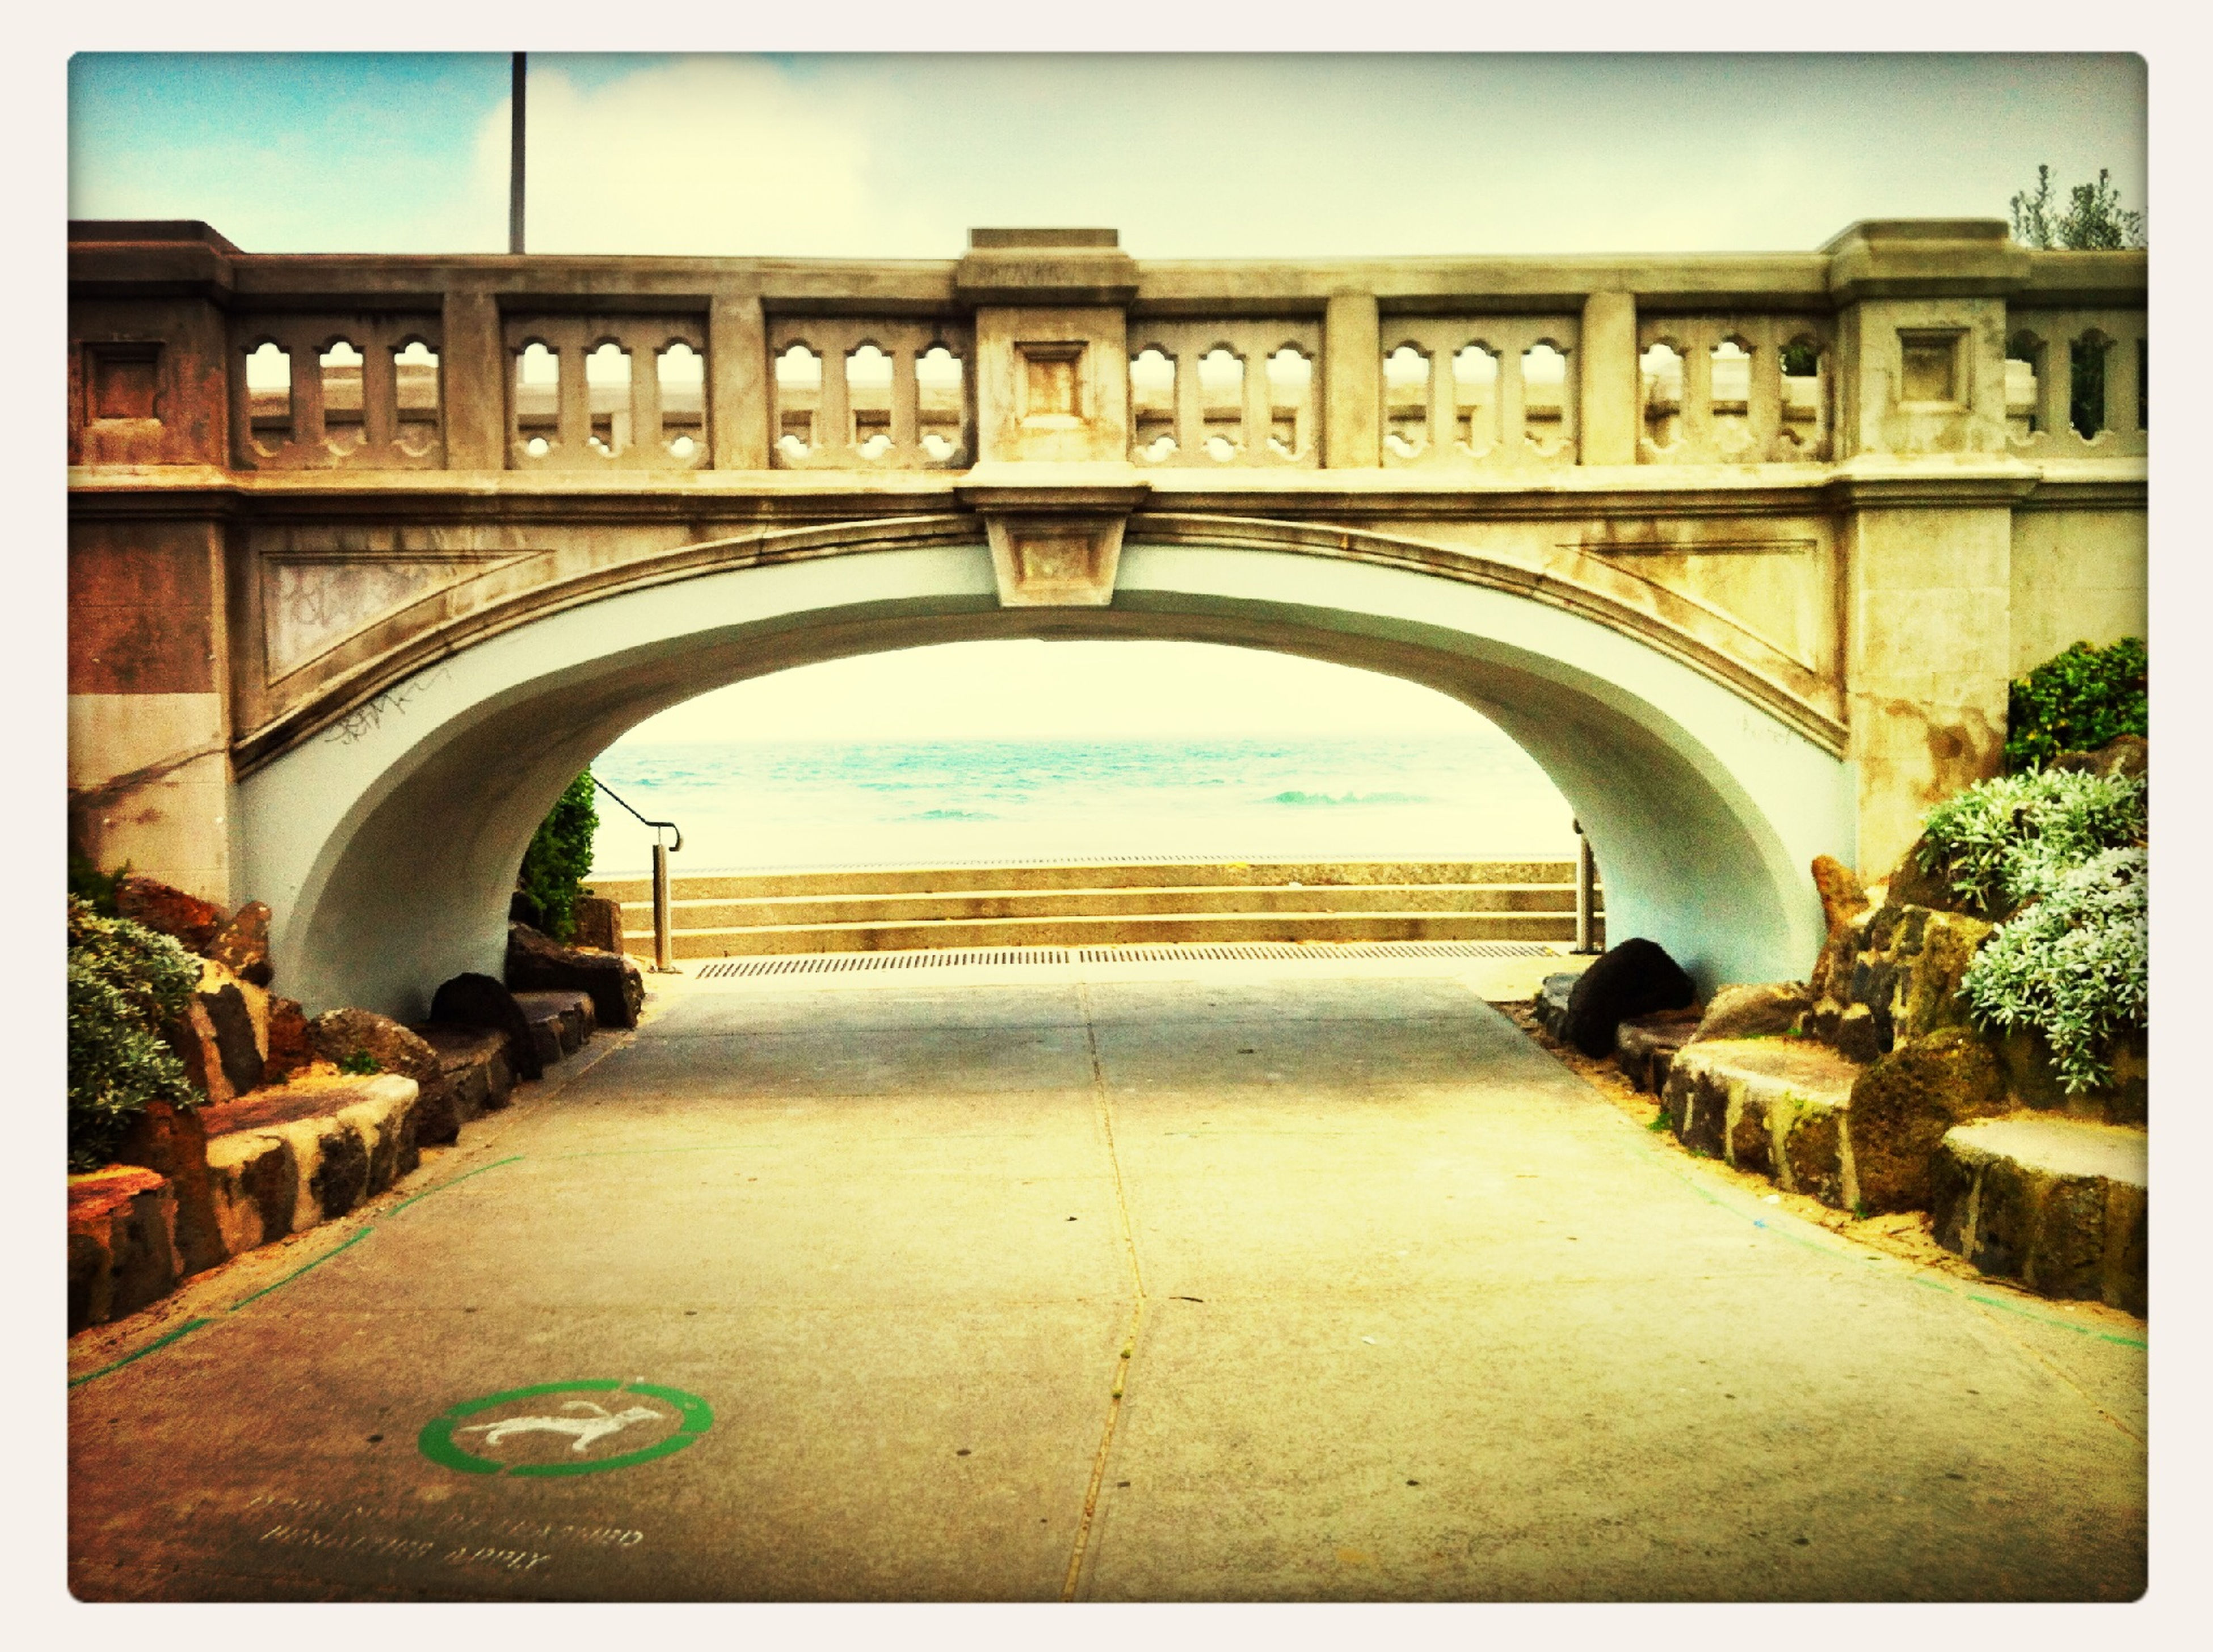 architecture, built structure, arch, transfer print, building exterior, auto post production filter, connection, bridge - man made structure, water, railing, day, bridge, no people, sky, outdoors, clear sky, arched, architectural column, sunlight, building